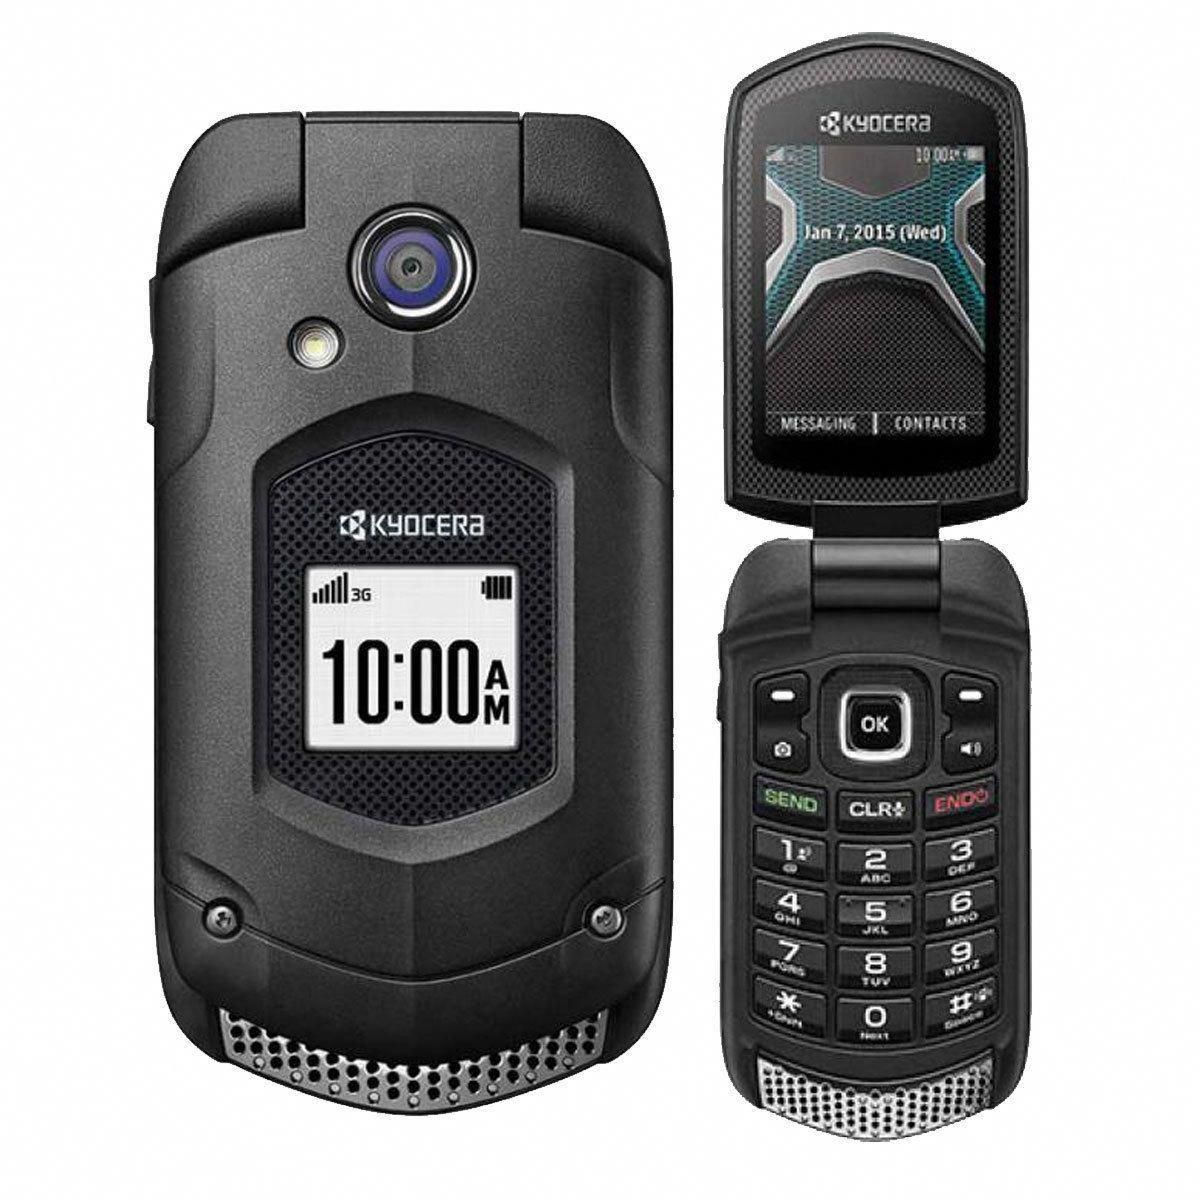 Kyocera Duraxa E4510 Black Us Cellular Only Rugged Waterproof Flip Phone Uscellularphones Phones For Sale Flip Phones Us Cellular